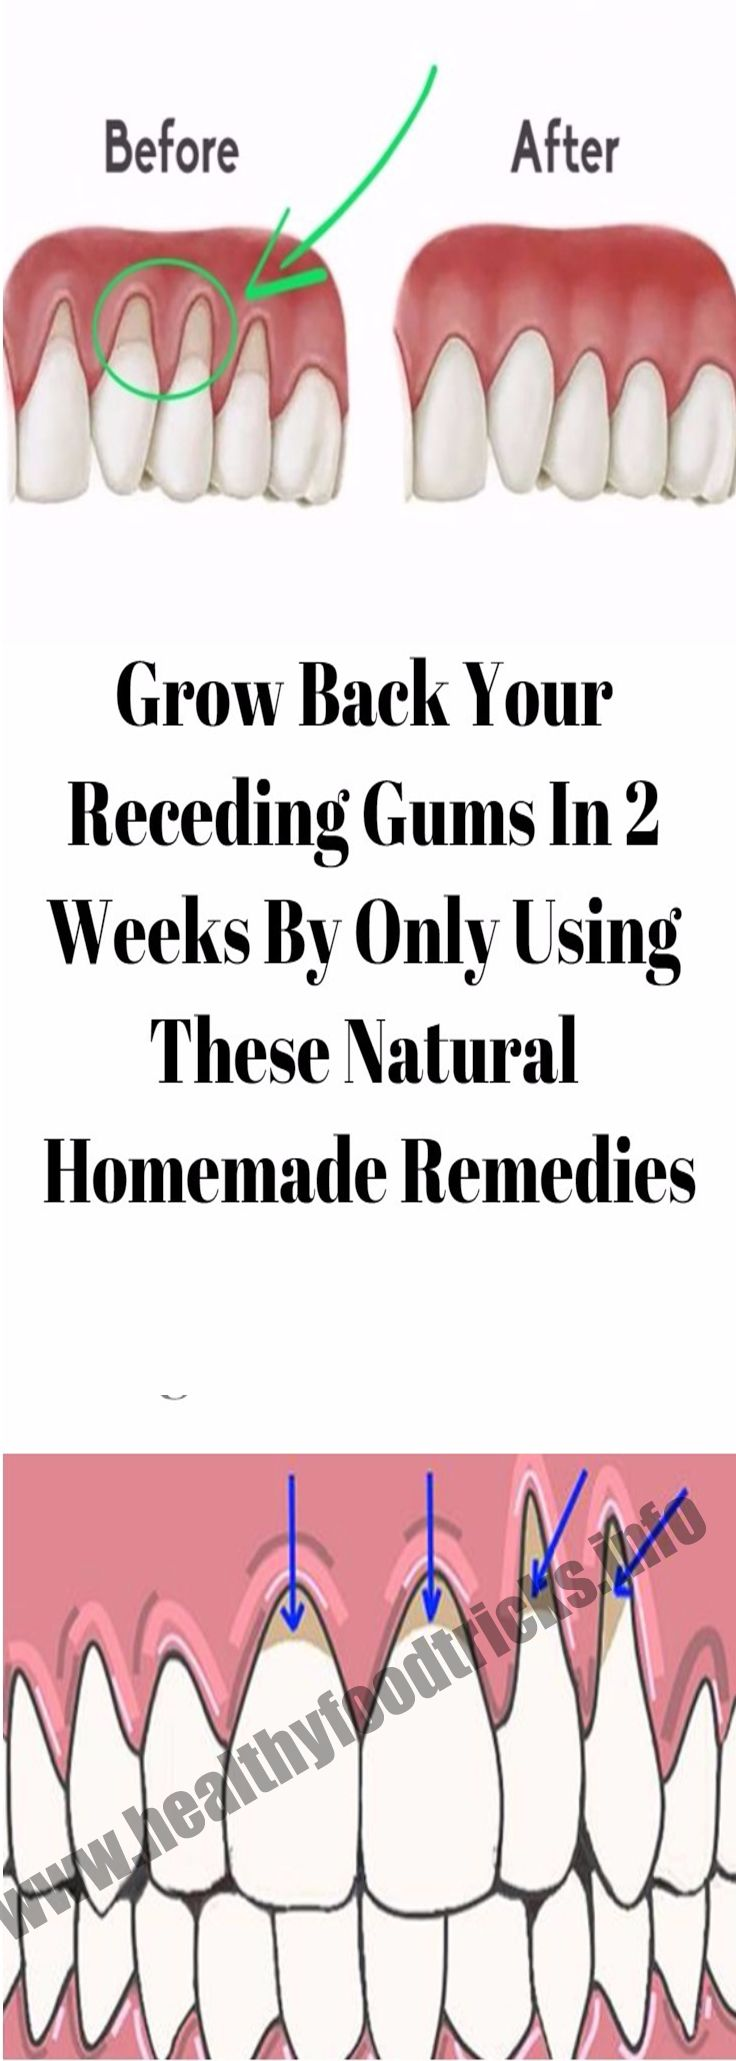 GROW BACK YOUR RECEDING GUMS IN 2 WEEKS BY ONLY USING THESE NATURAL HOMEMADE REMEDIES – Healthy Food Tricks